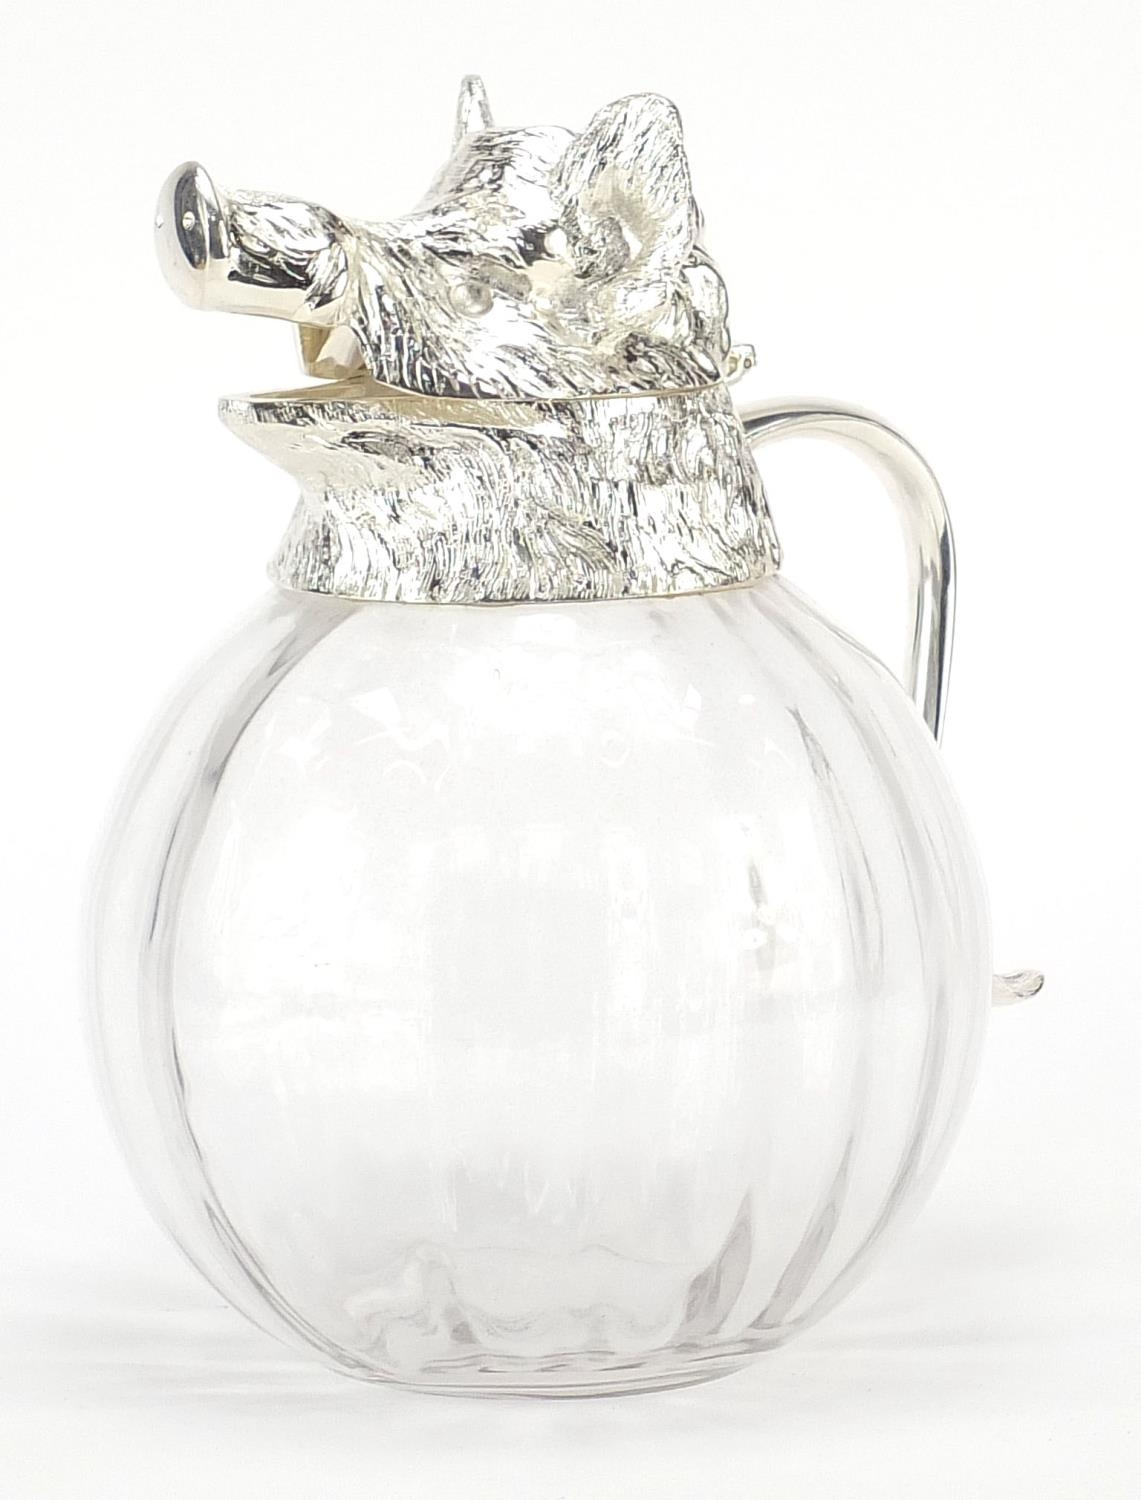 Manner of Valenti, globular glass carafe with silver plated mounts in the form of a boars head, 28cm